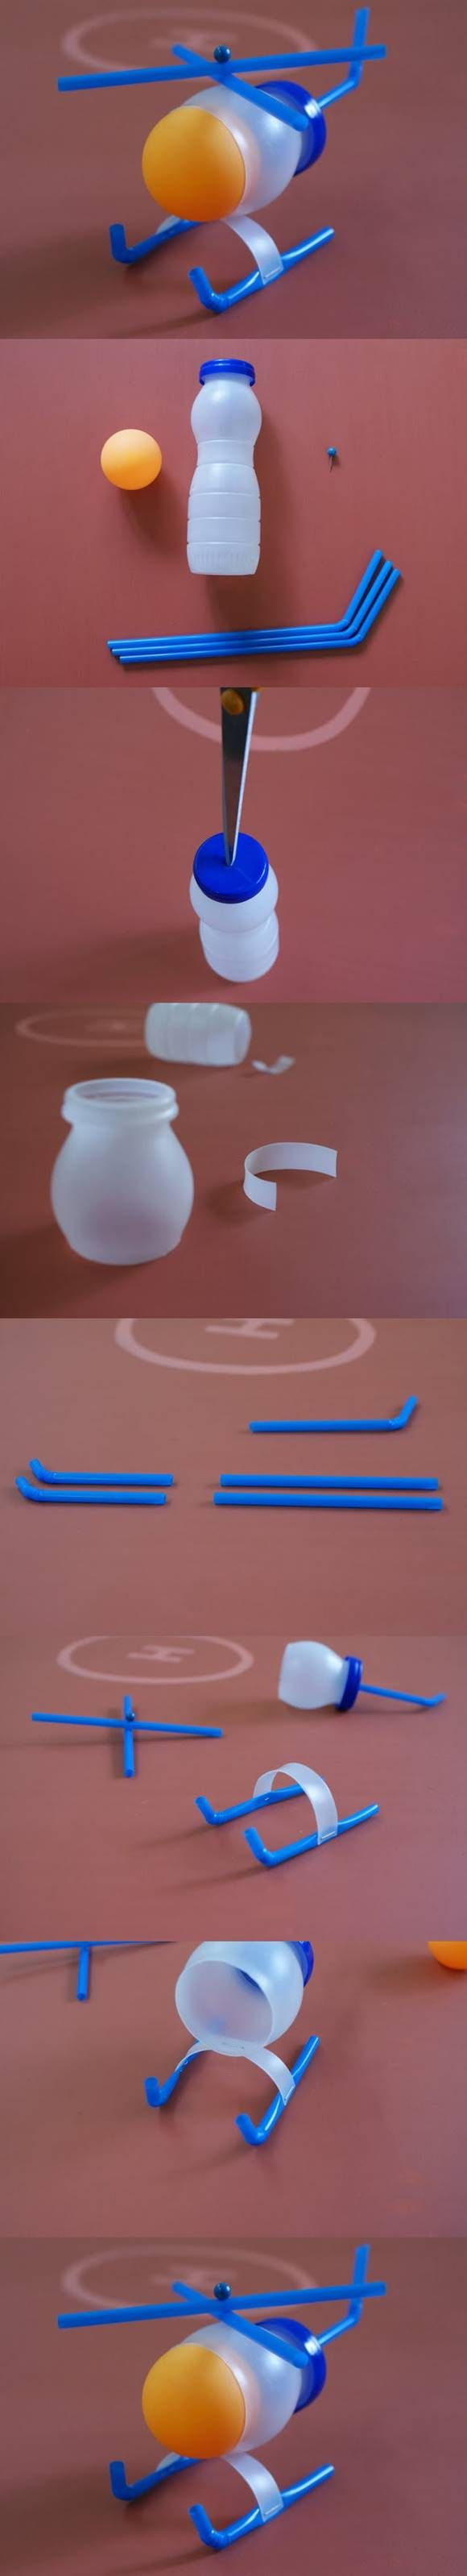 How to DIY Plastic Bottle Toy Helicopter #craft #kids #toys #recycle could put an egg in replacement of the bouncy ball